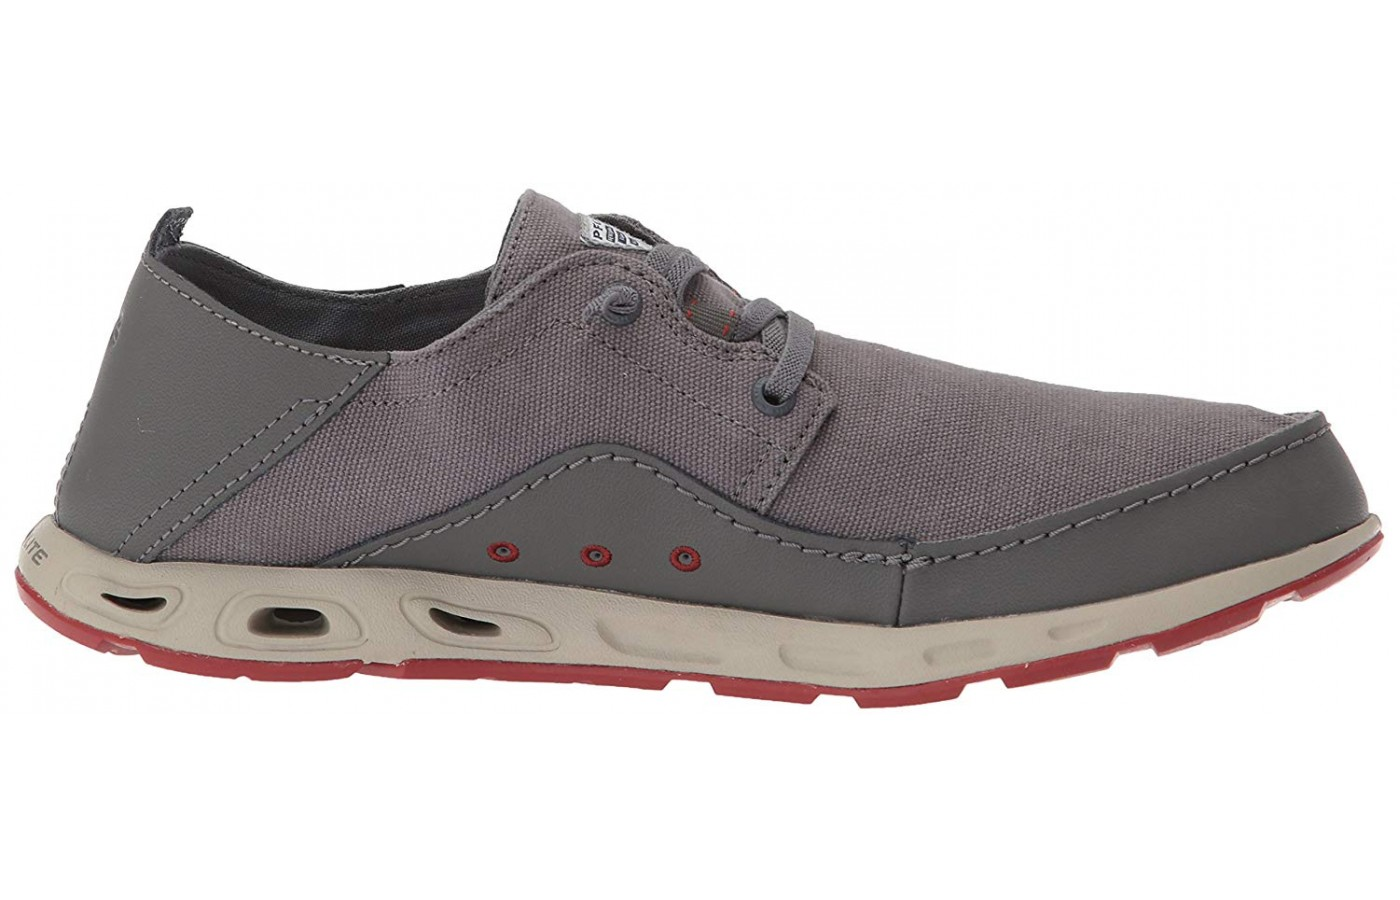 Columbia Bahama Vent Relaxed Outsole